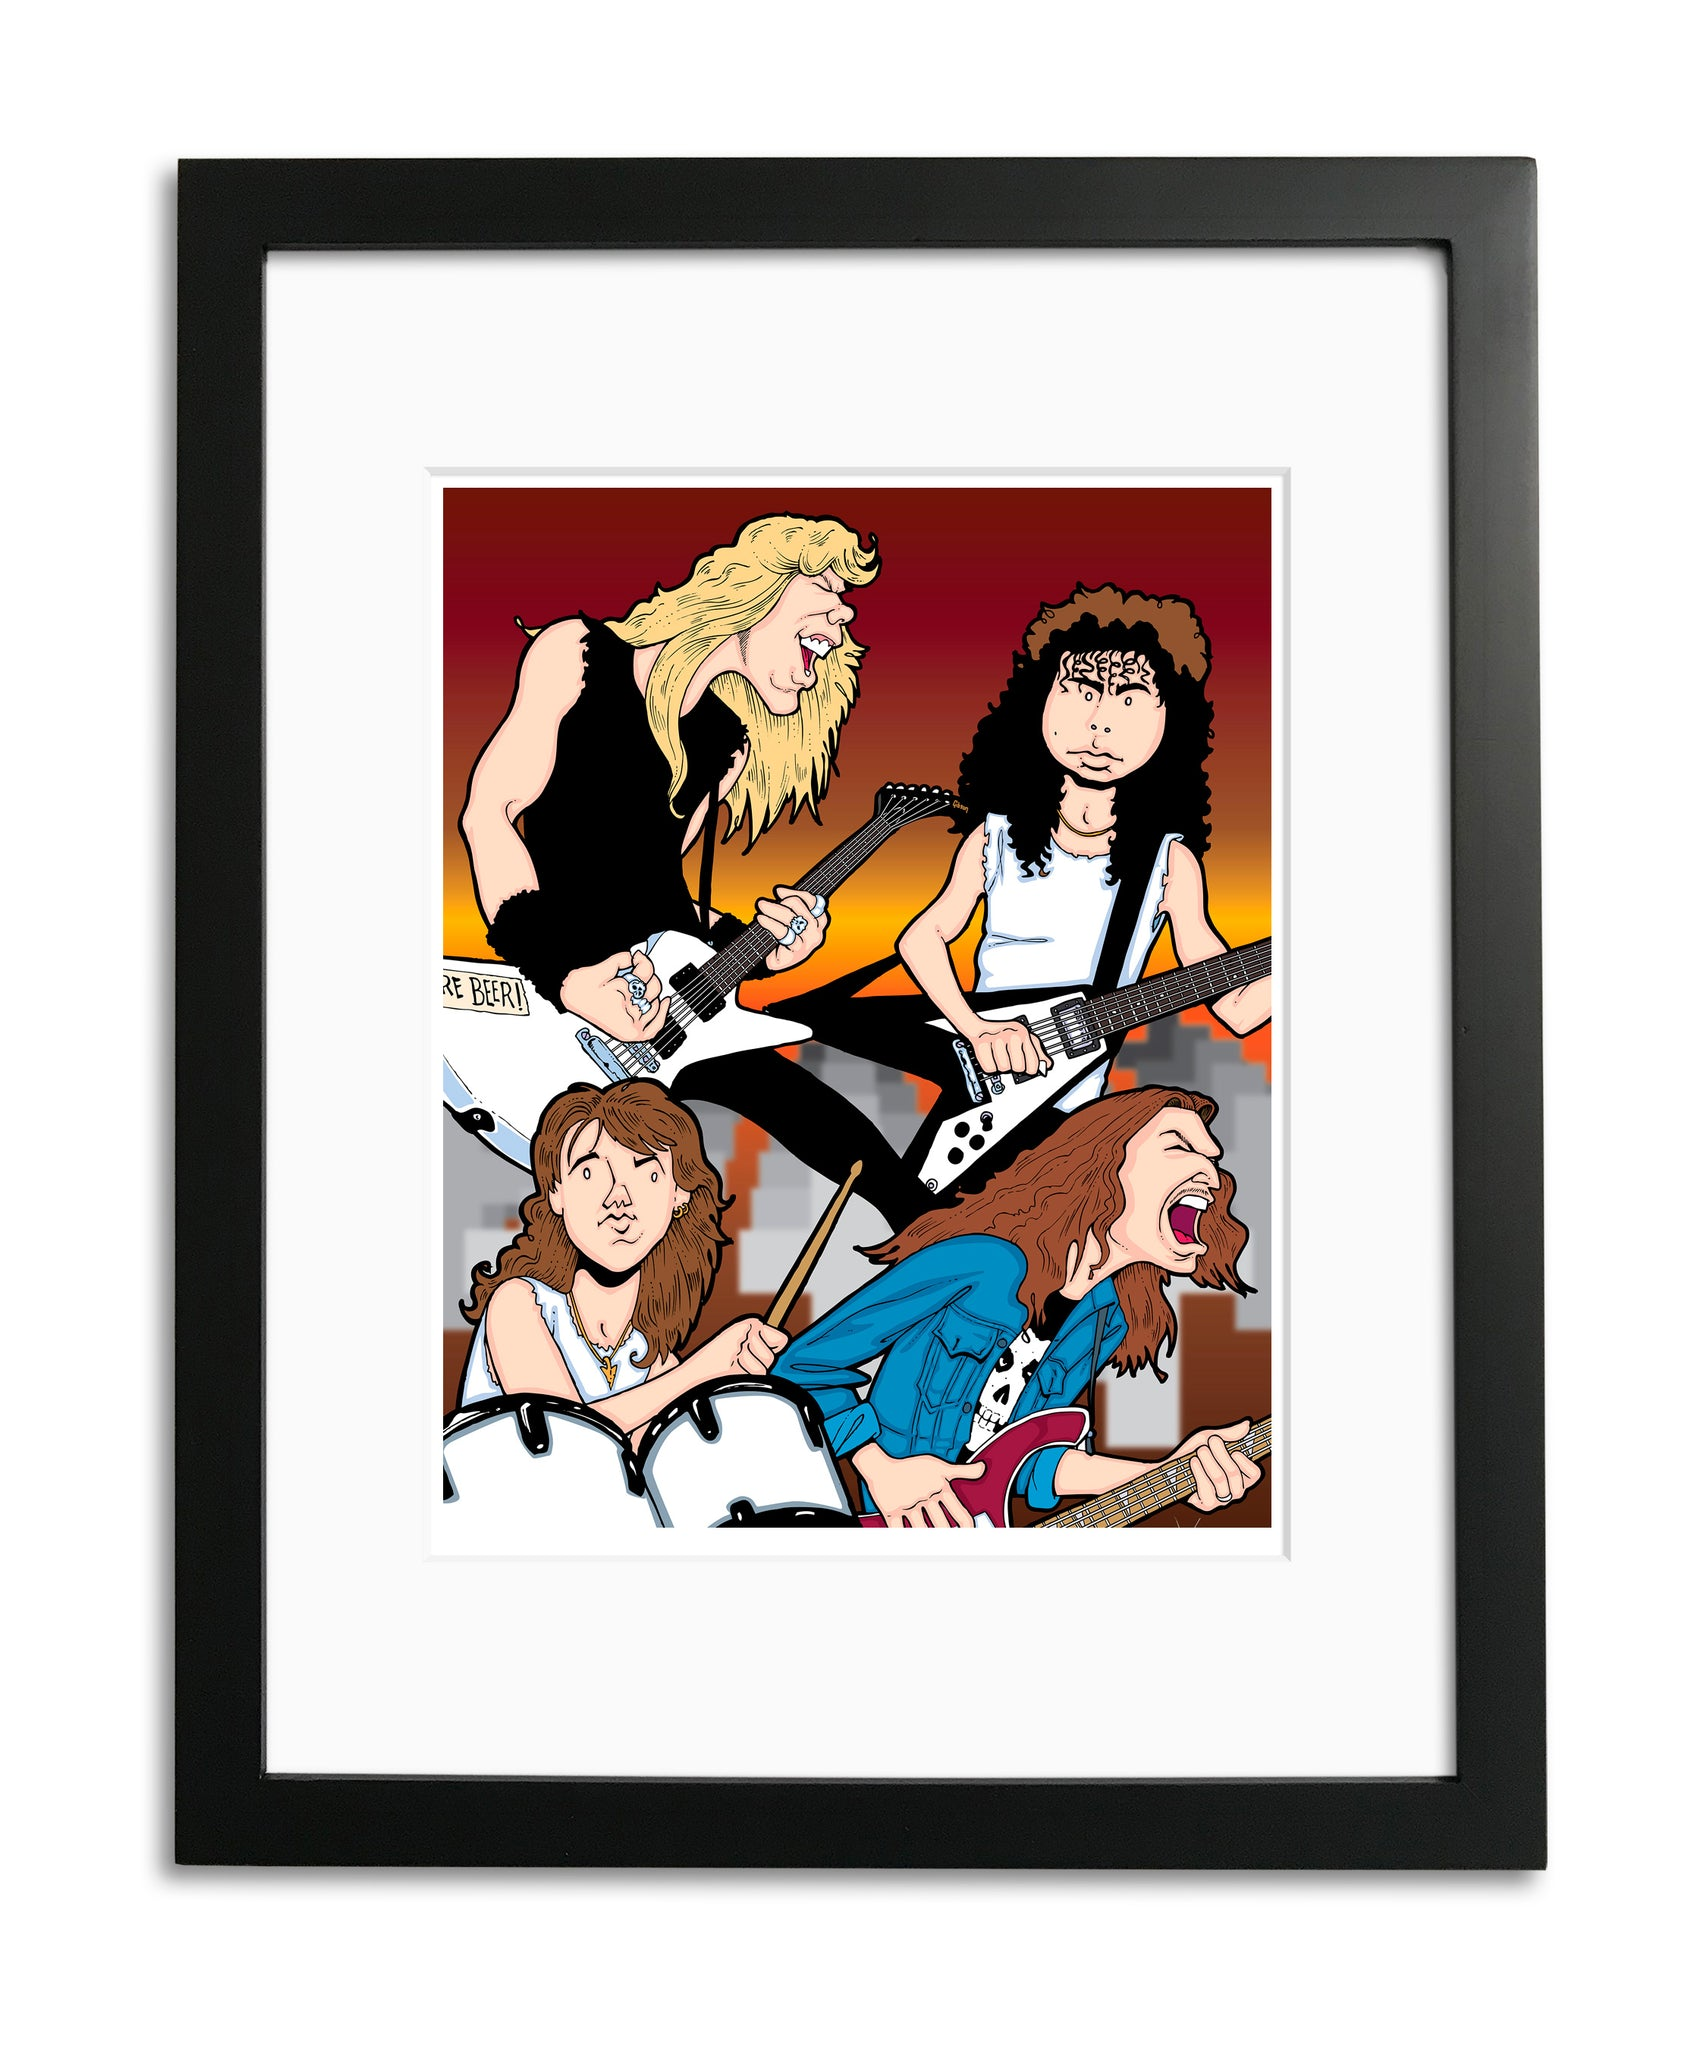 Metallica by Anthony Parisi, Limited Edition Print